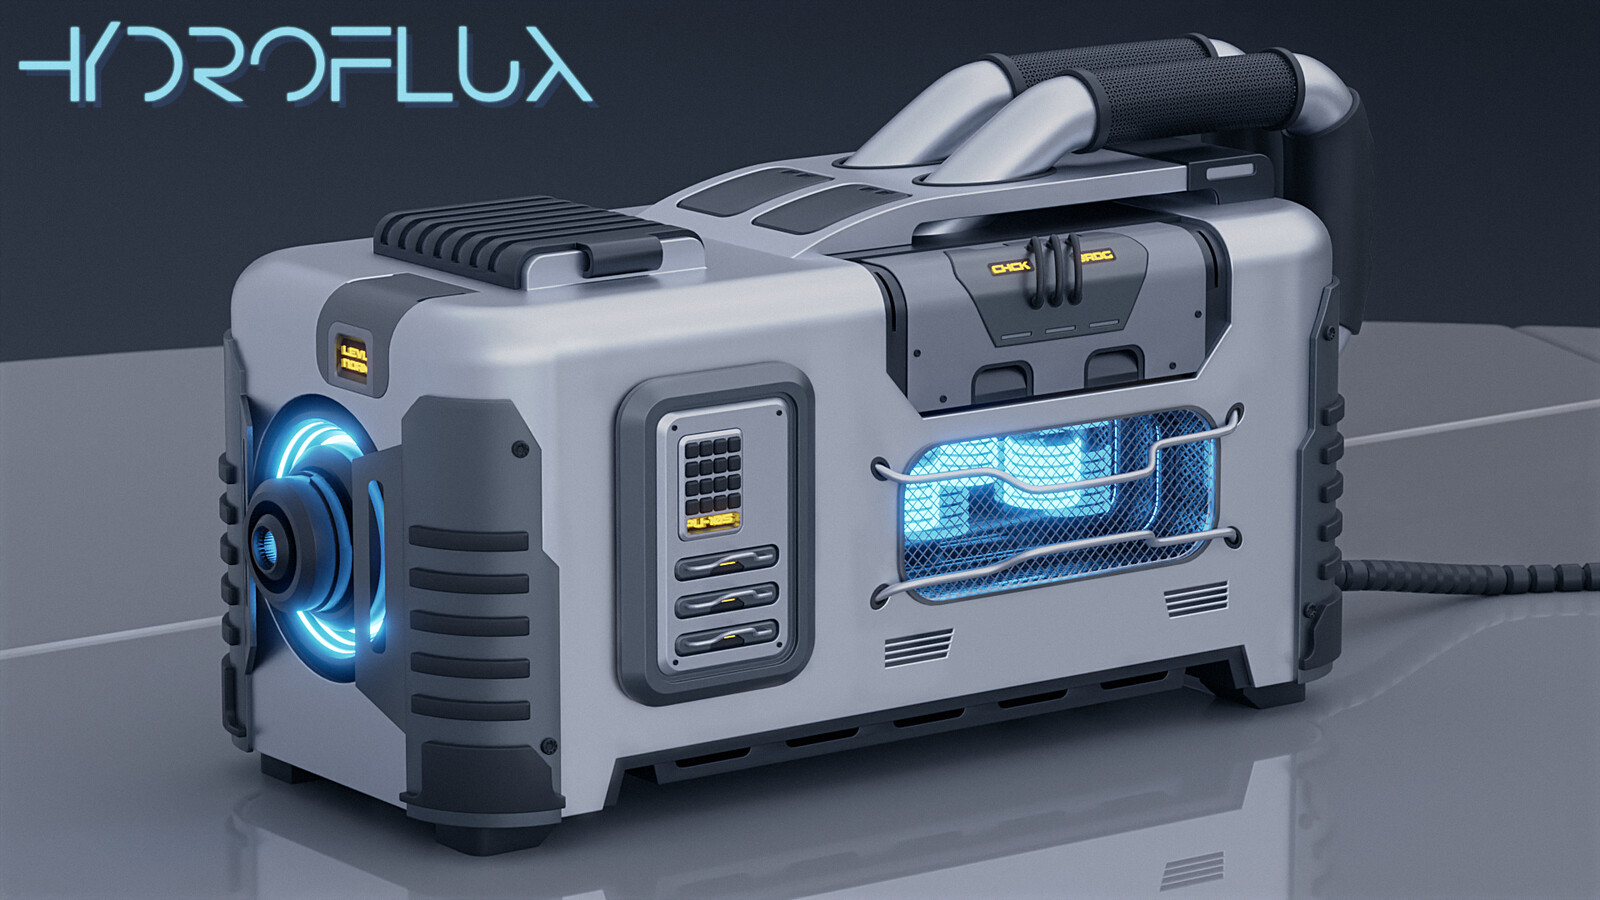 Hydroflux Capacitor for storing highly compressed waterbased fusion energy.